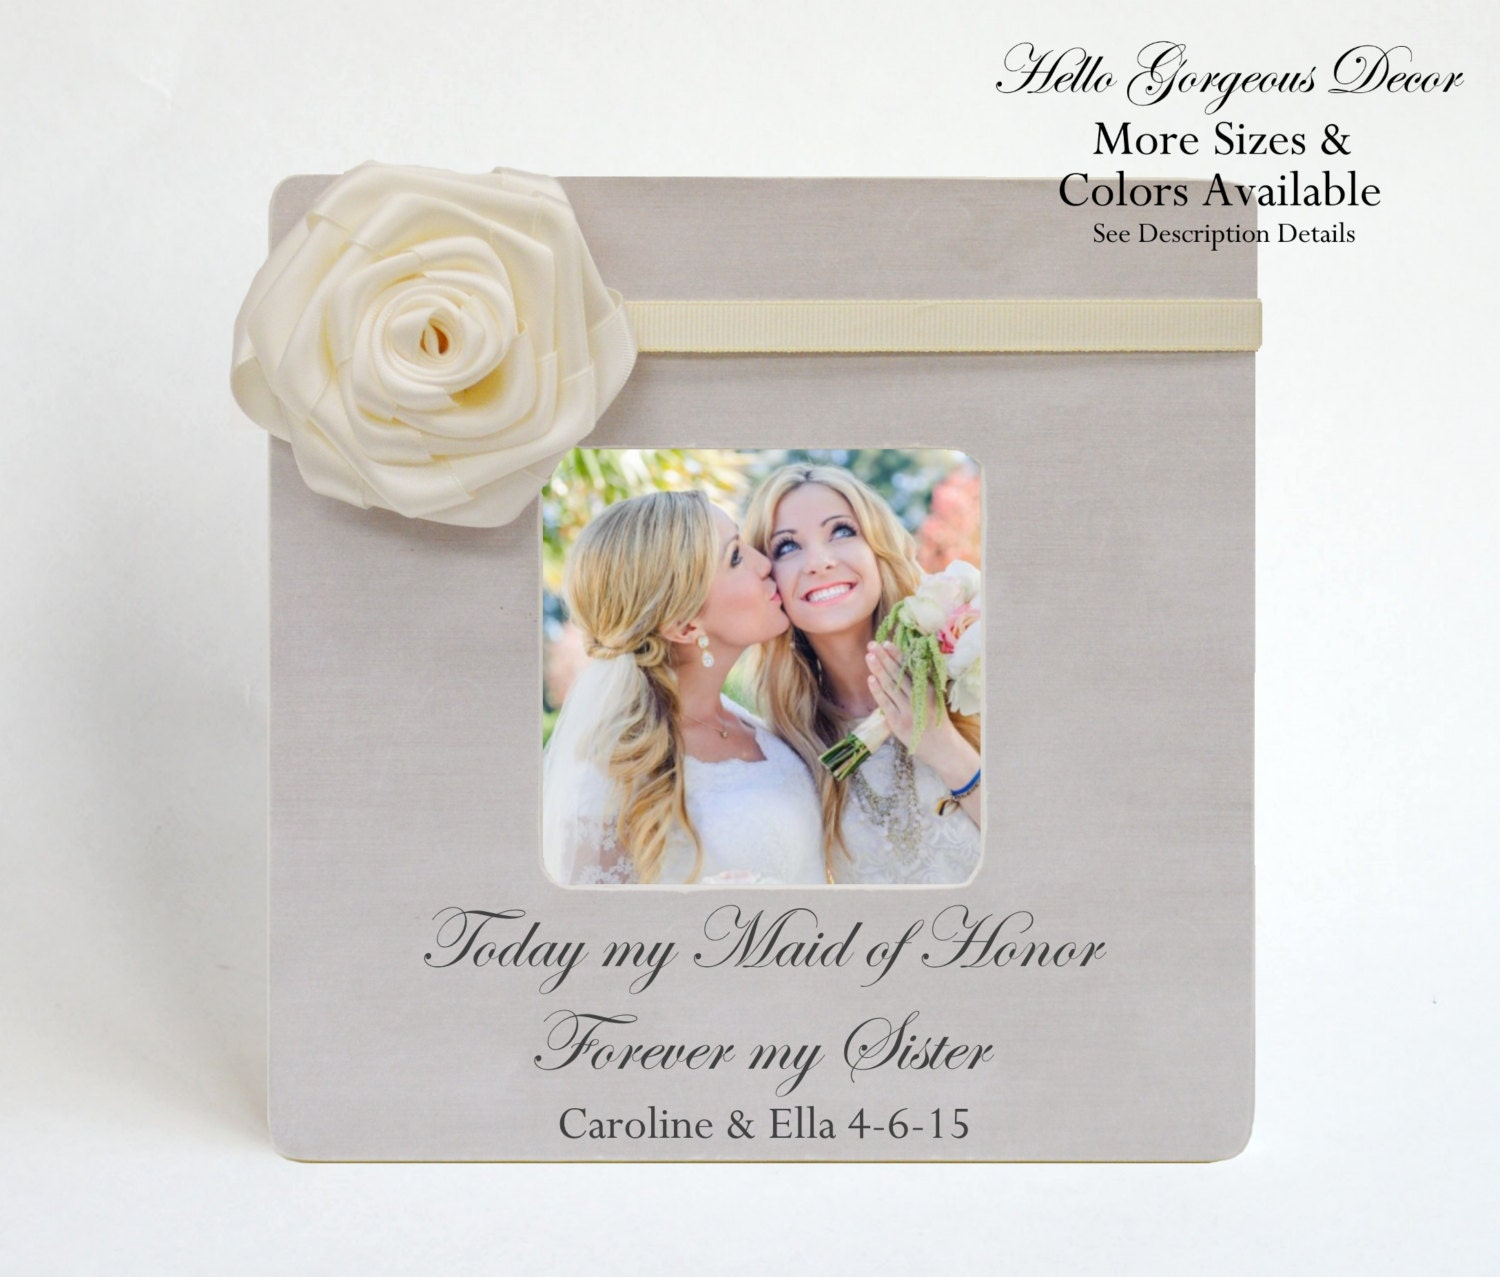 Maid Of Honor Sister Picture Frame Ask Thank You Proposal